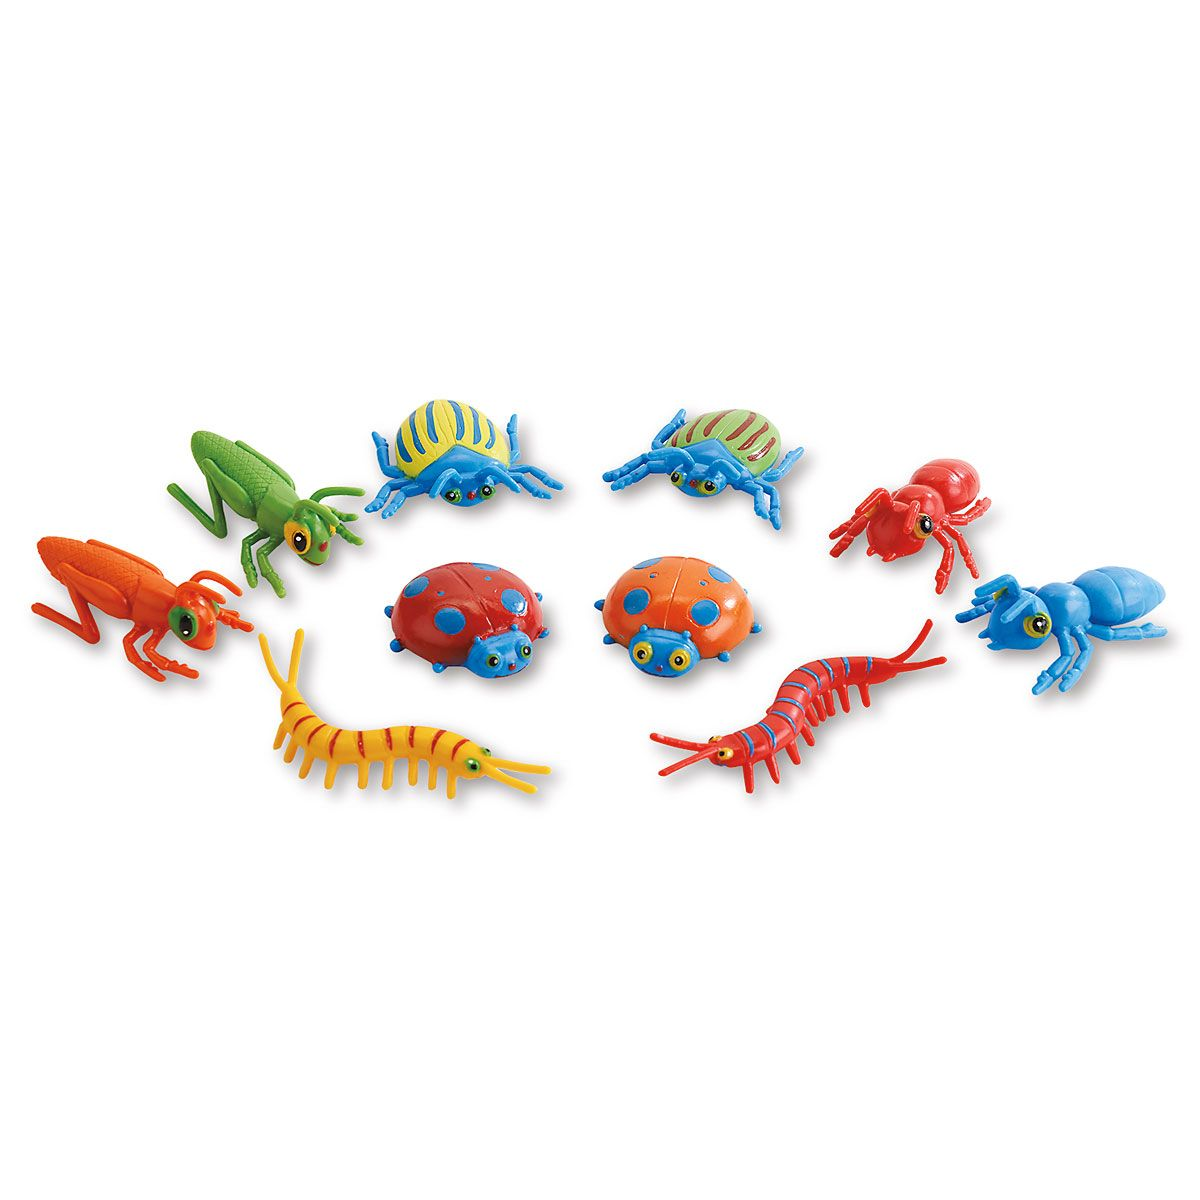 Sunny Patch Bag of Bugs by Melissa & Doug®